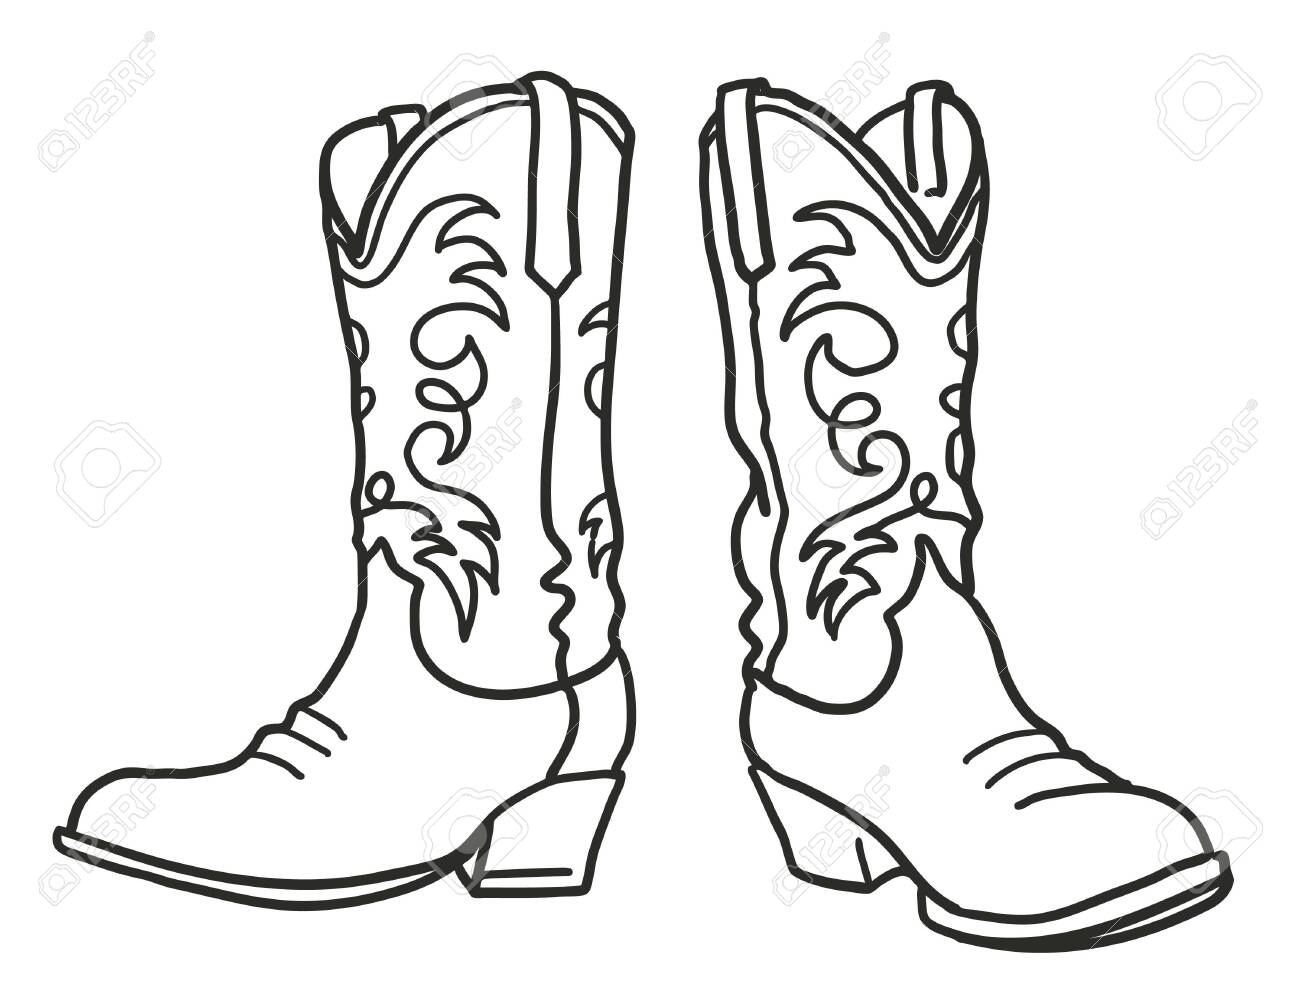 Cowboy boots. Vector graphic hand drawn illustration isolated on white for print or design - 138360262